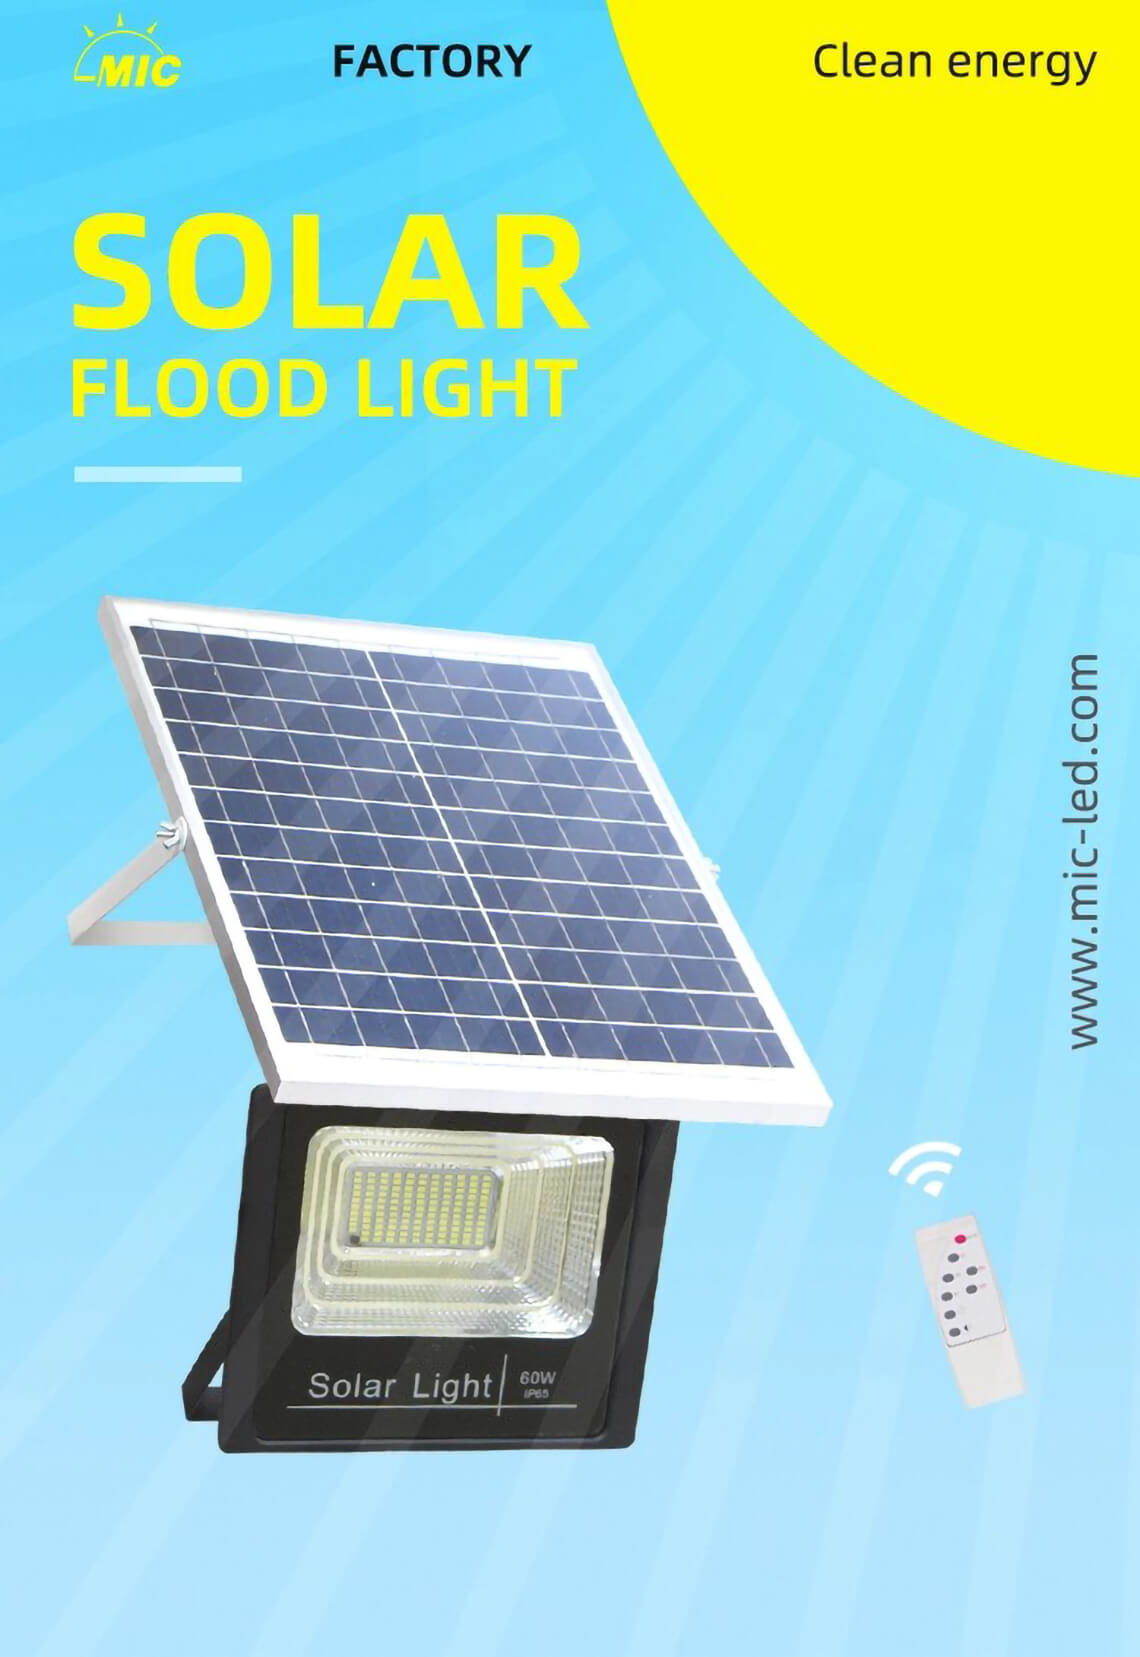 10w solar flood light-detail-1